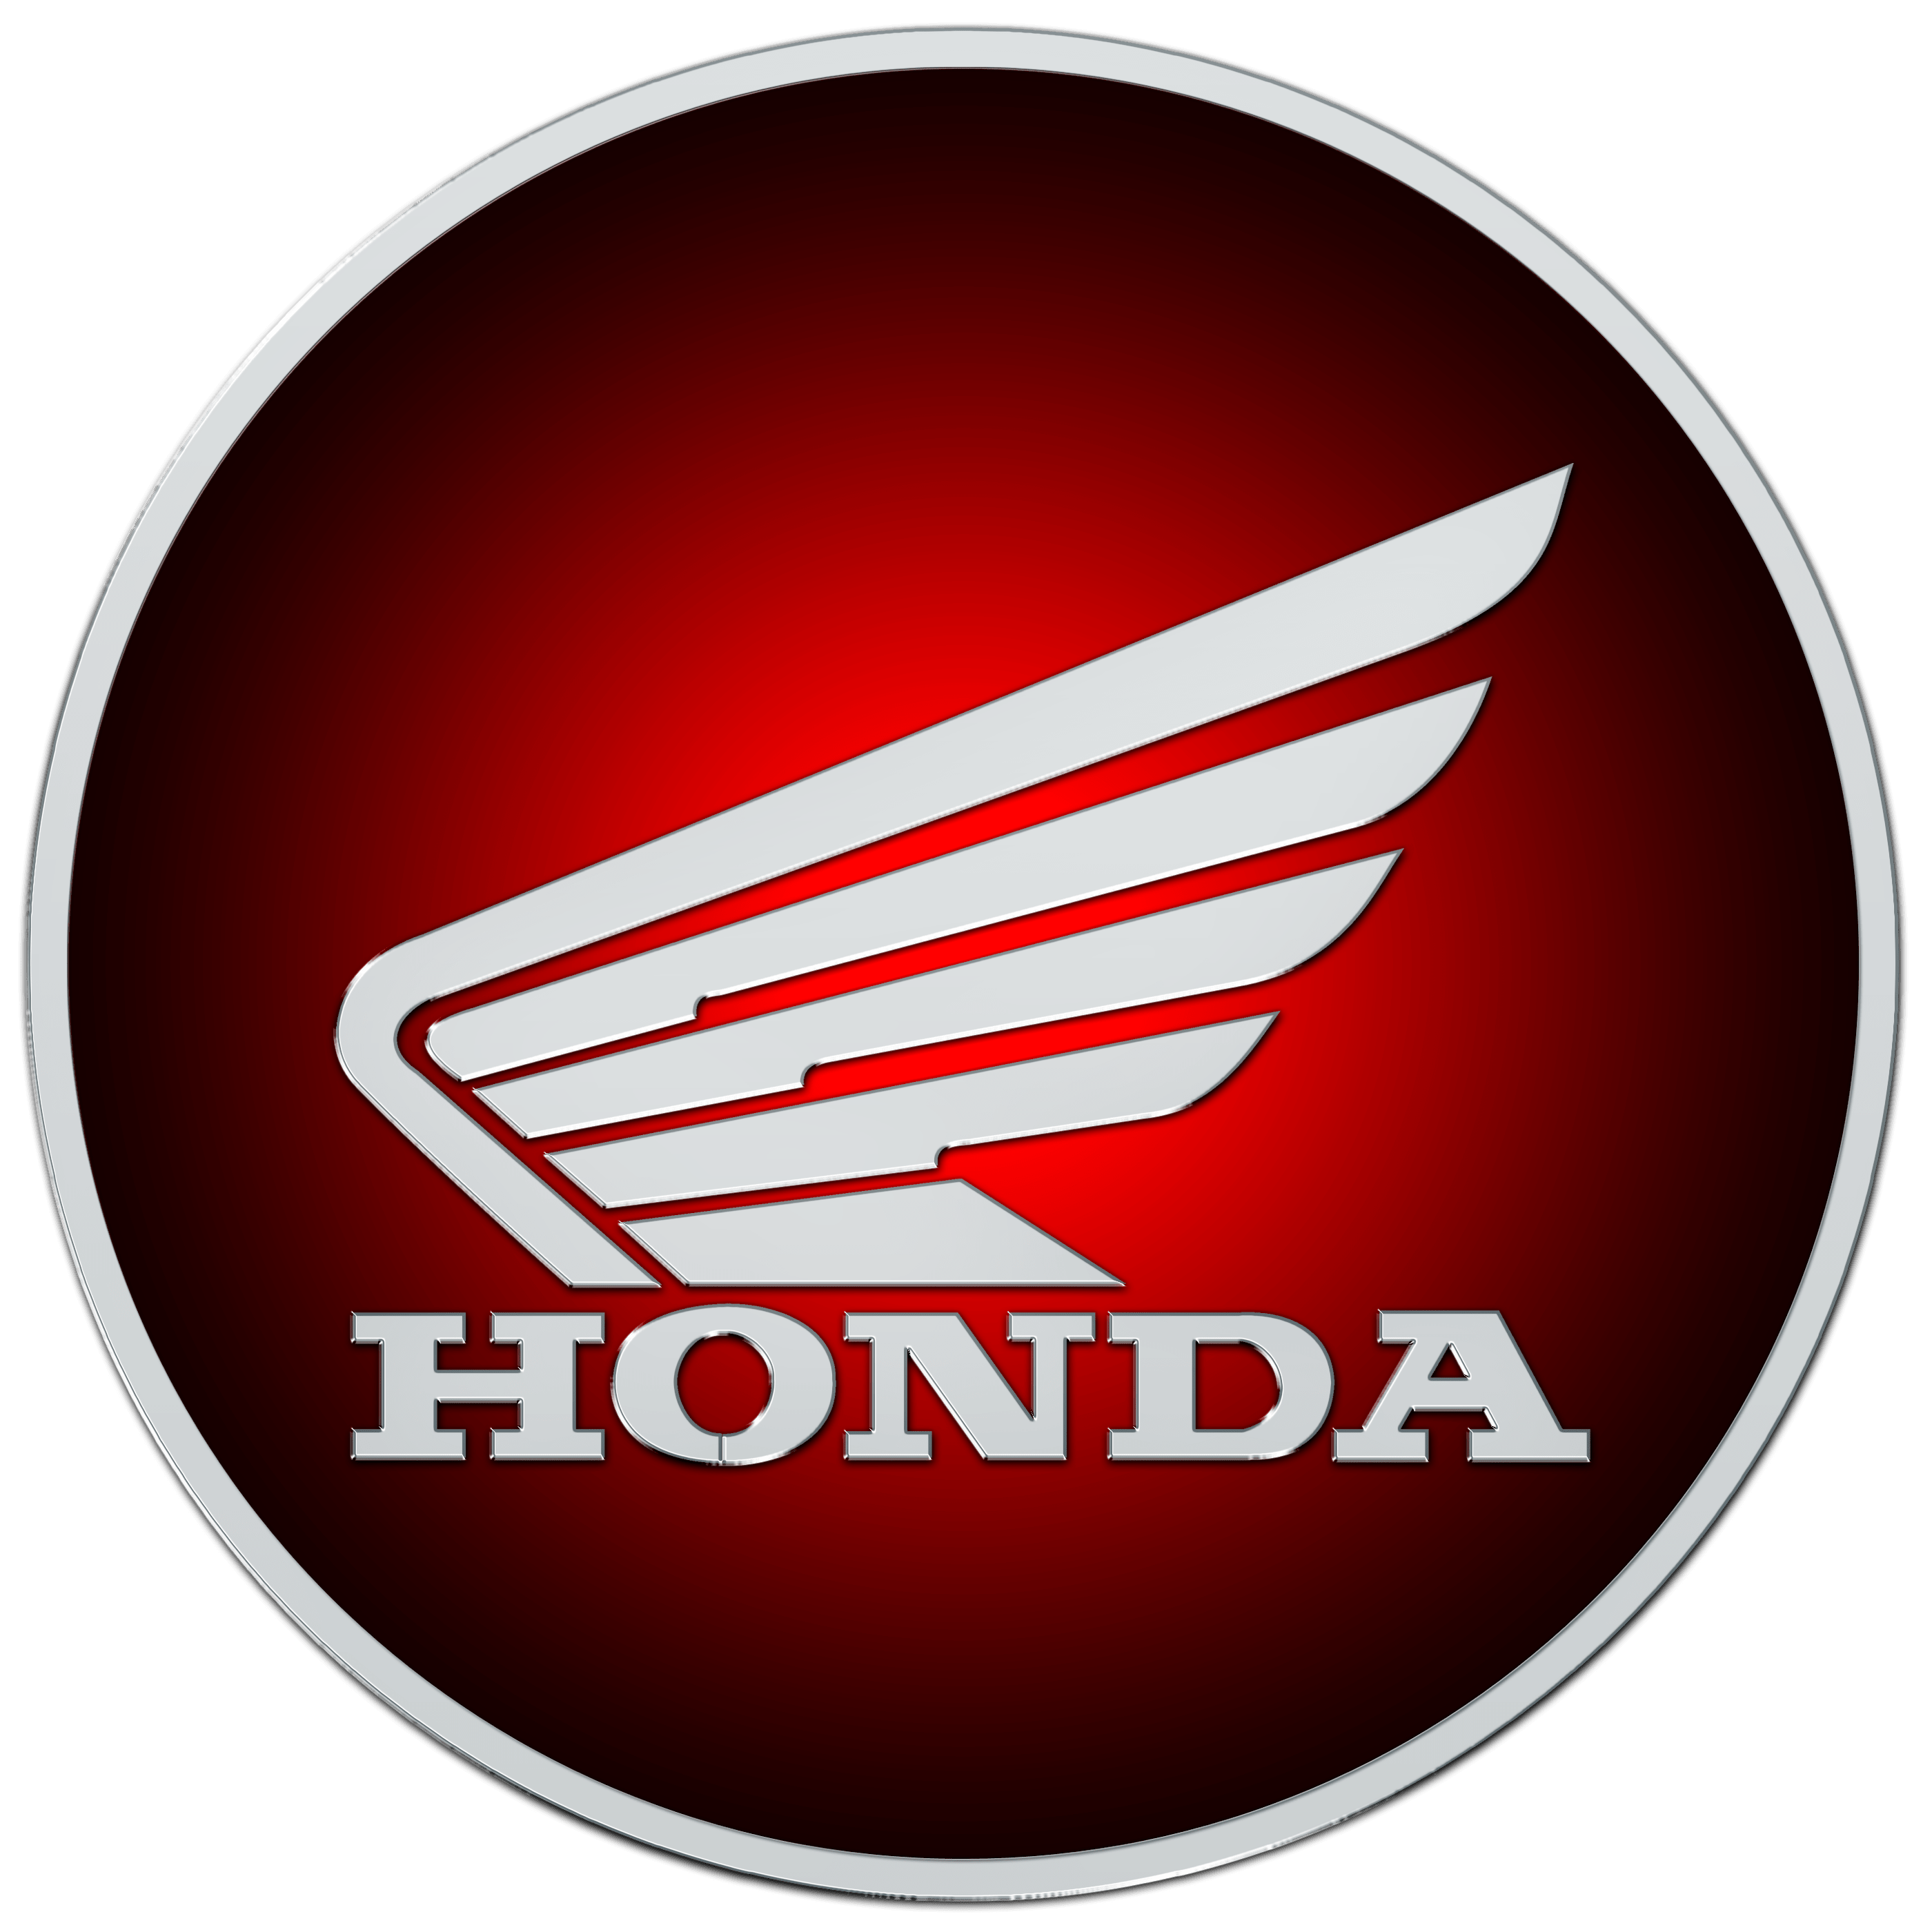 Honda motorcycle logo history and Meaning, bike emblem.